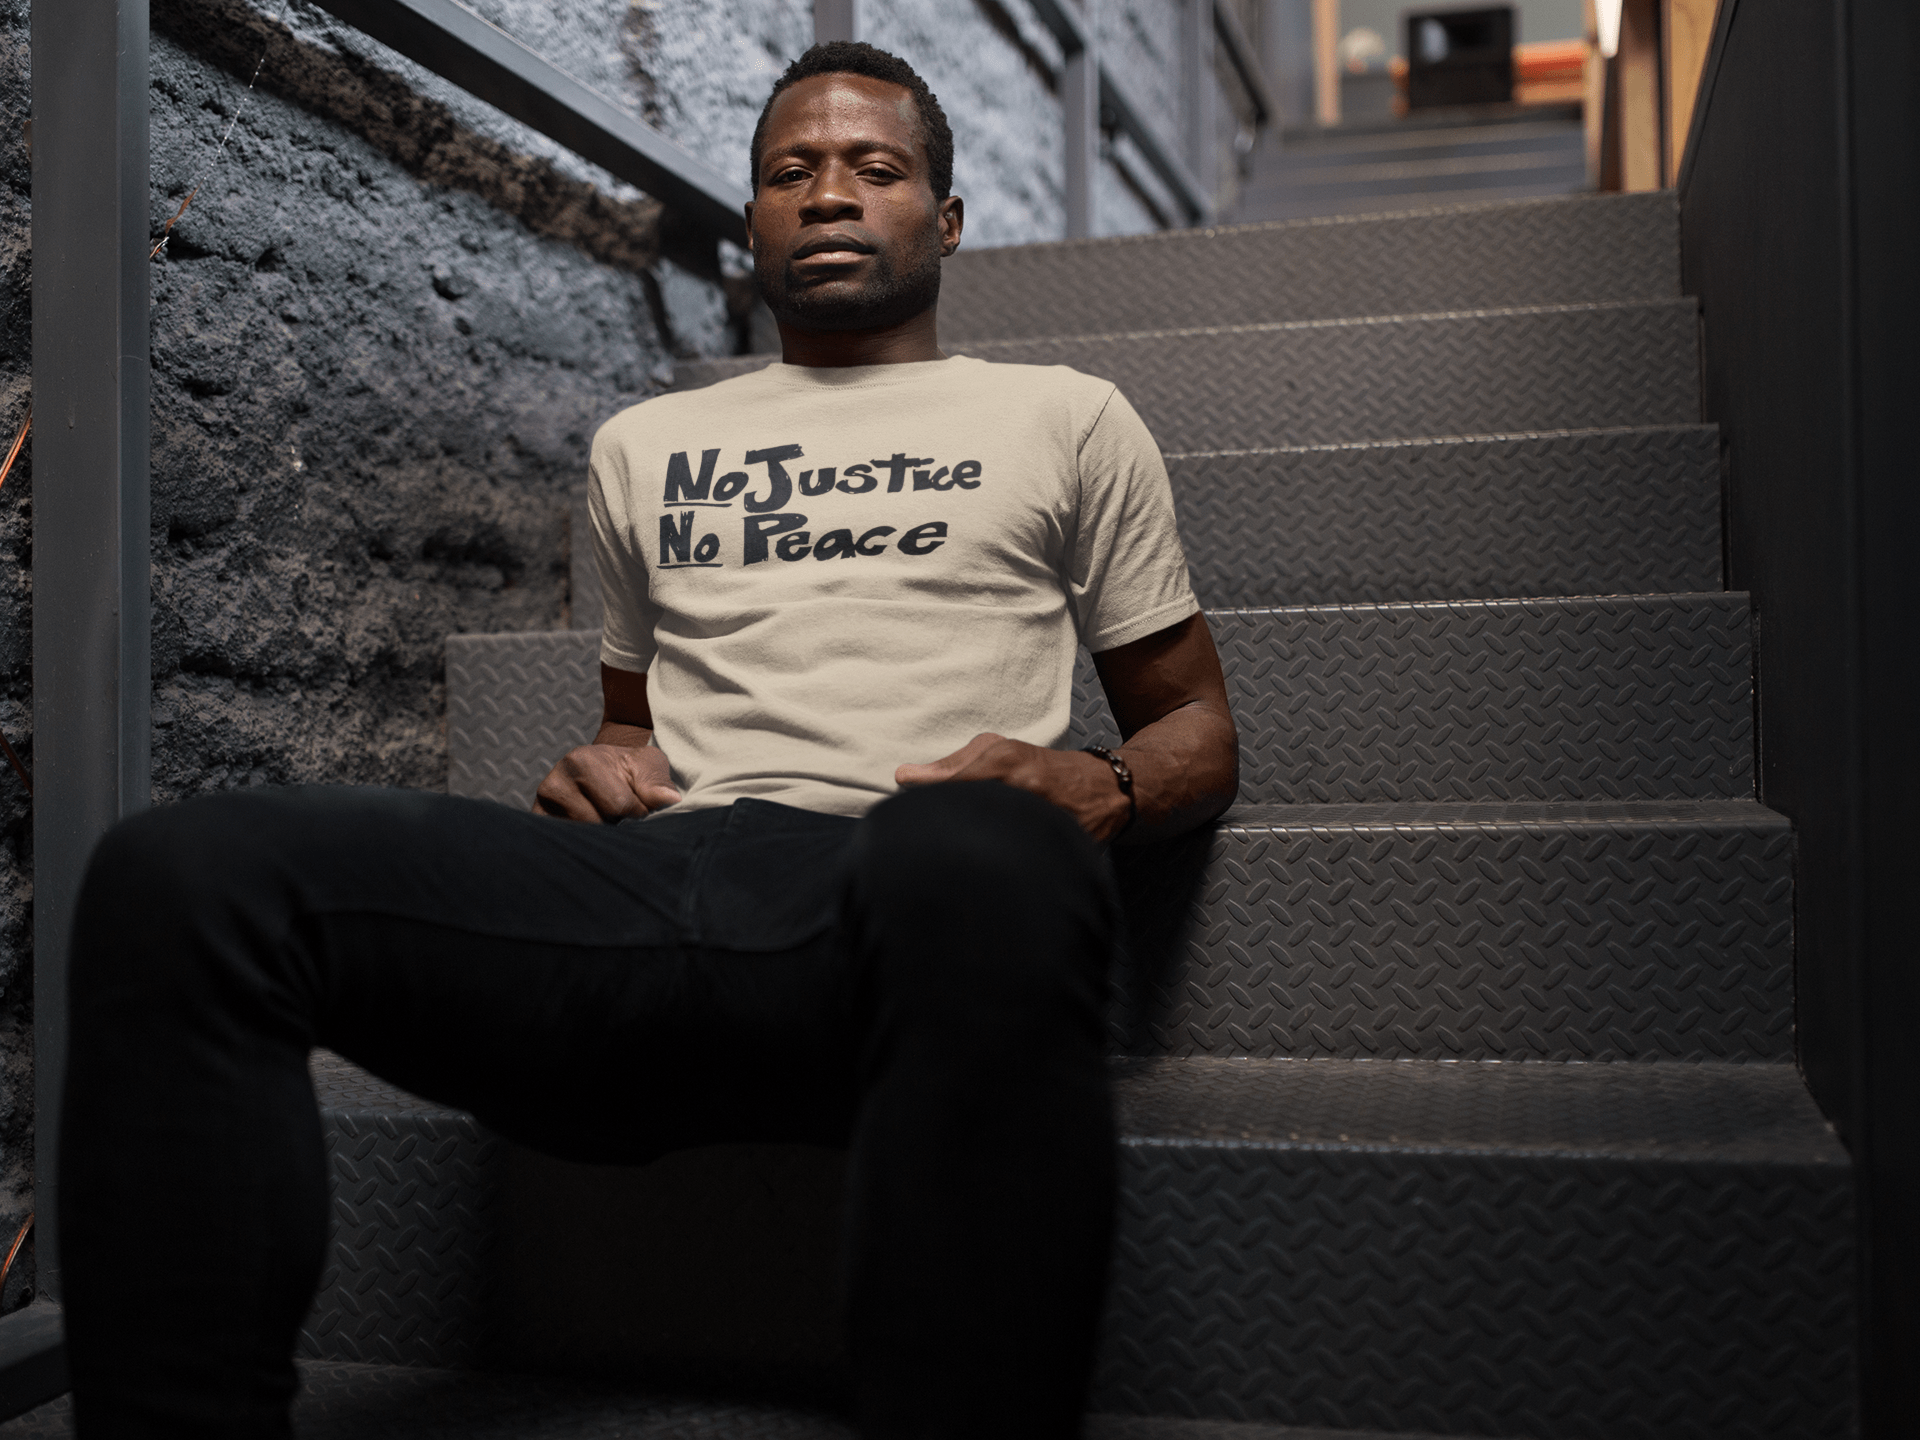 black-man-sitting-on-stairways-while-wearing-a-tshirt-mockup-a17166